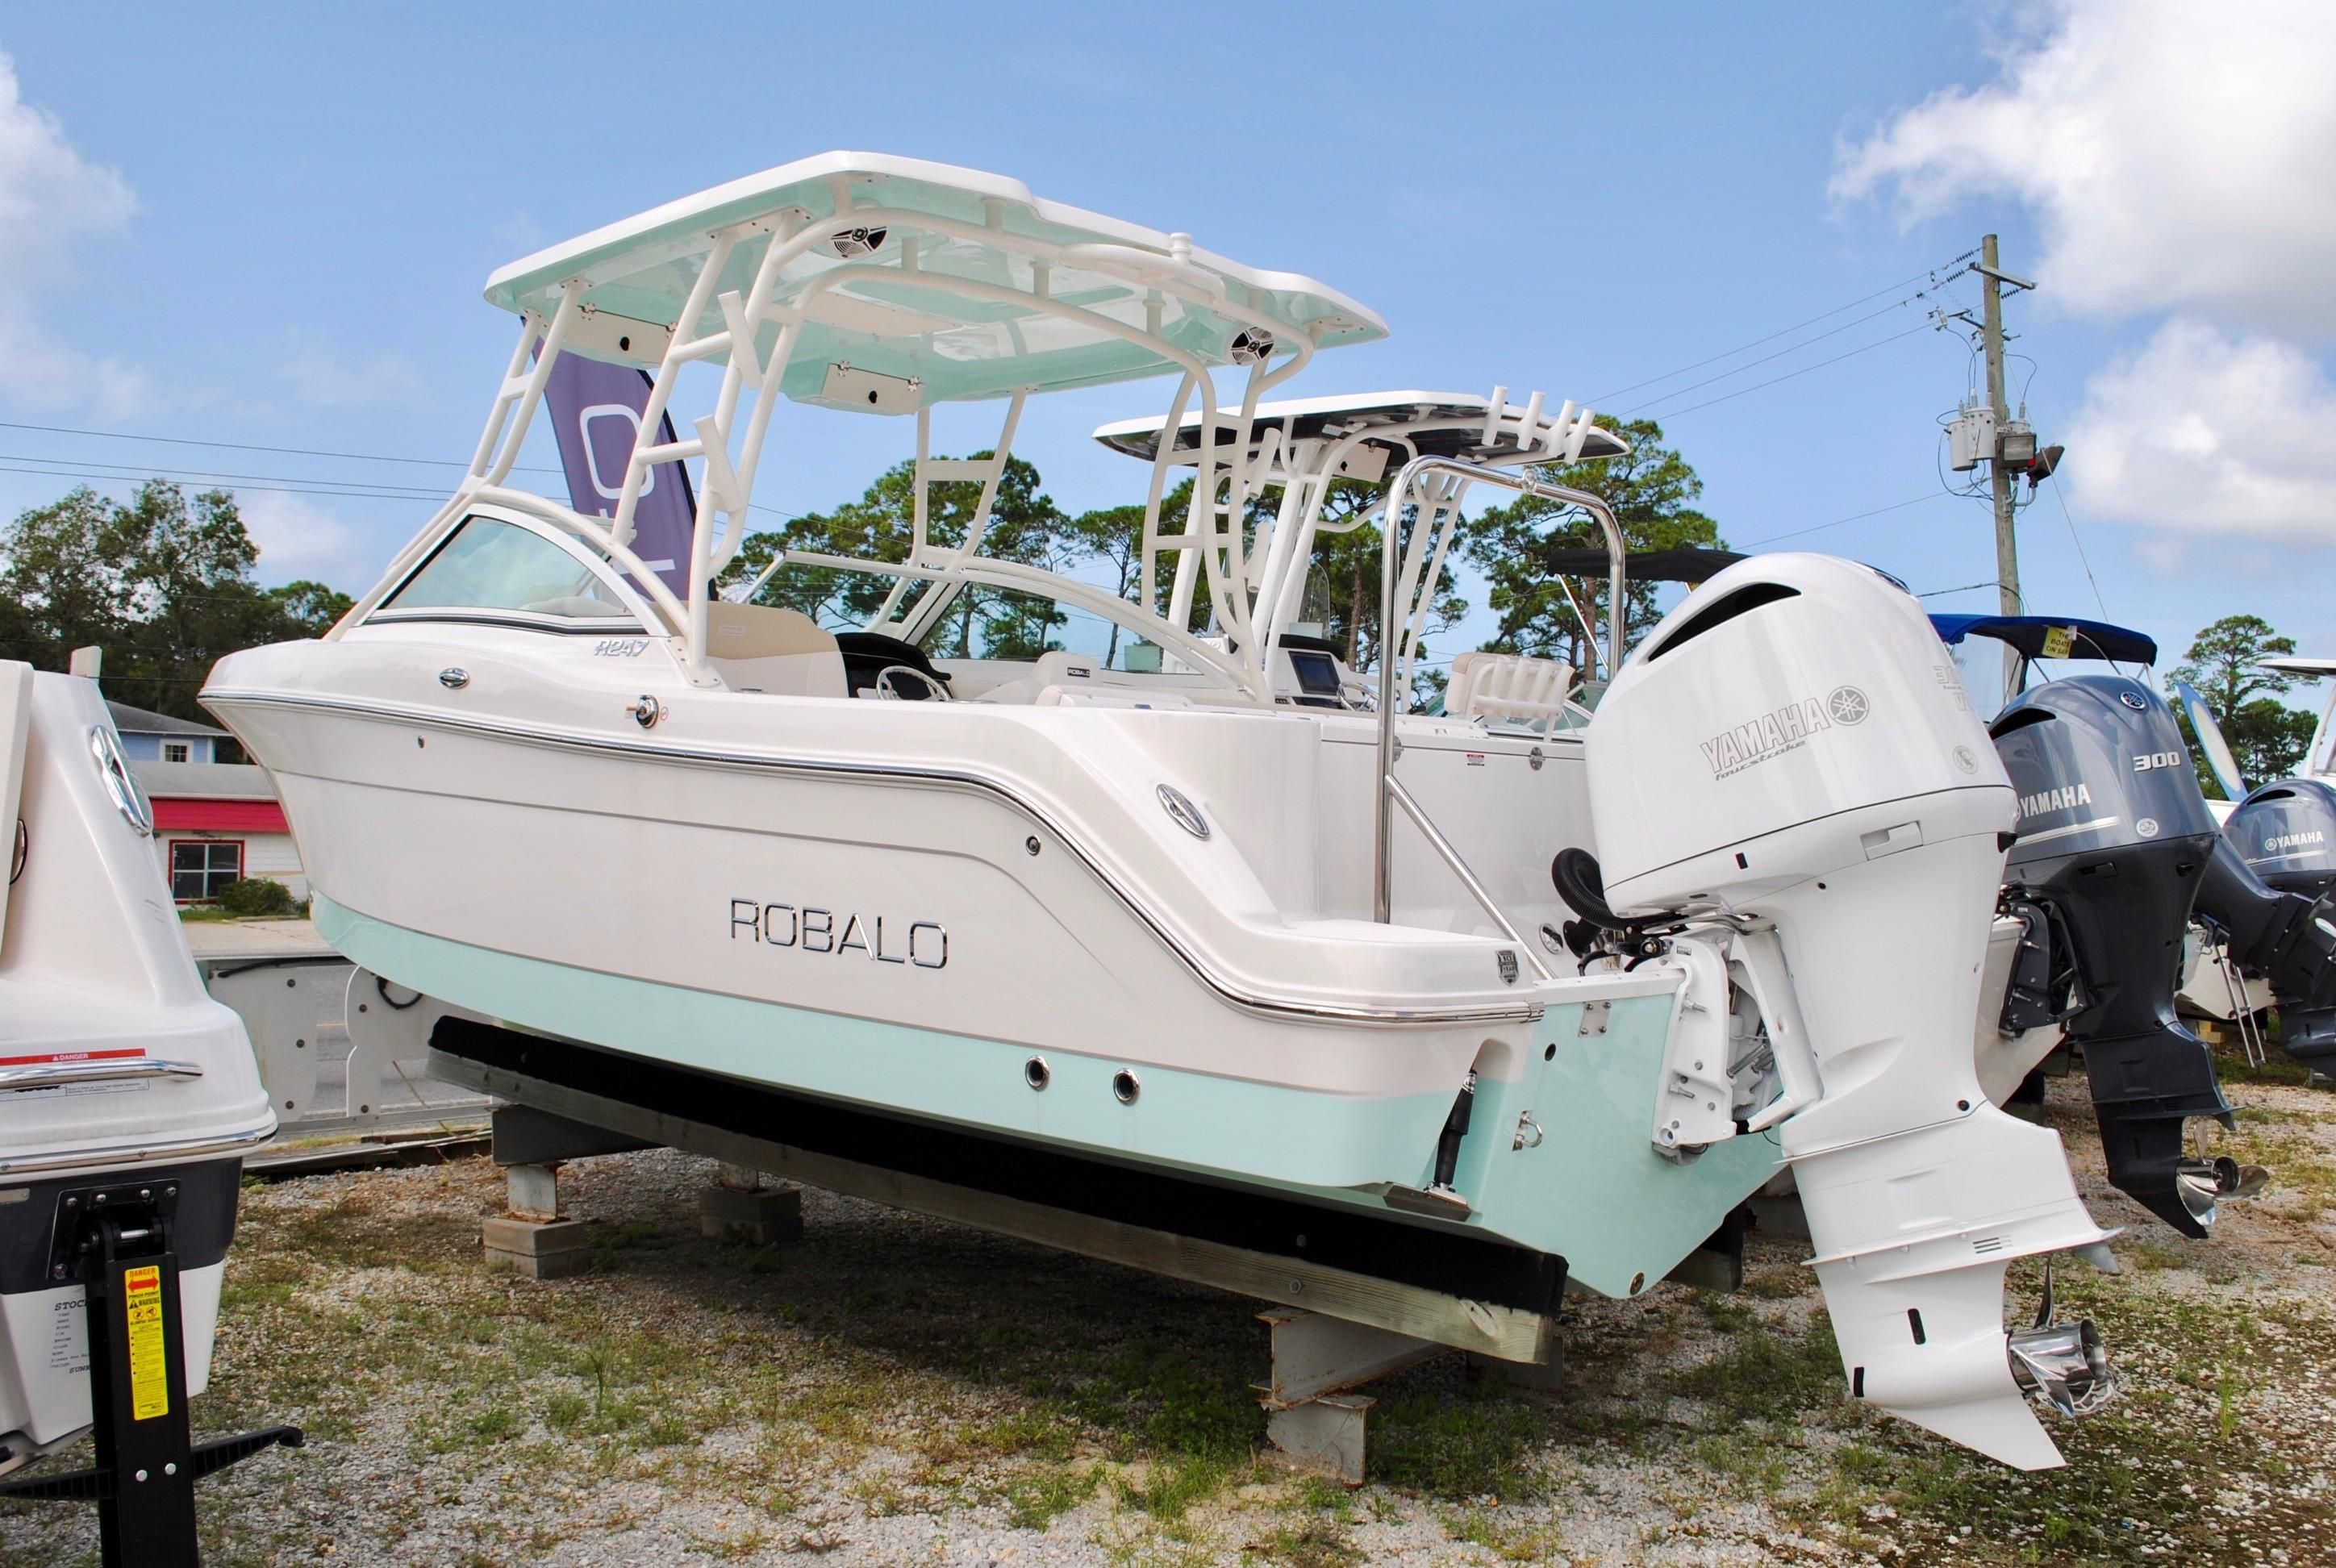 2017 robalo 247 dual console power boat for sale www for Robalo fish in english